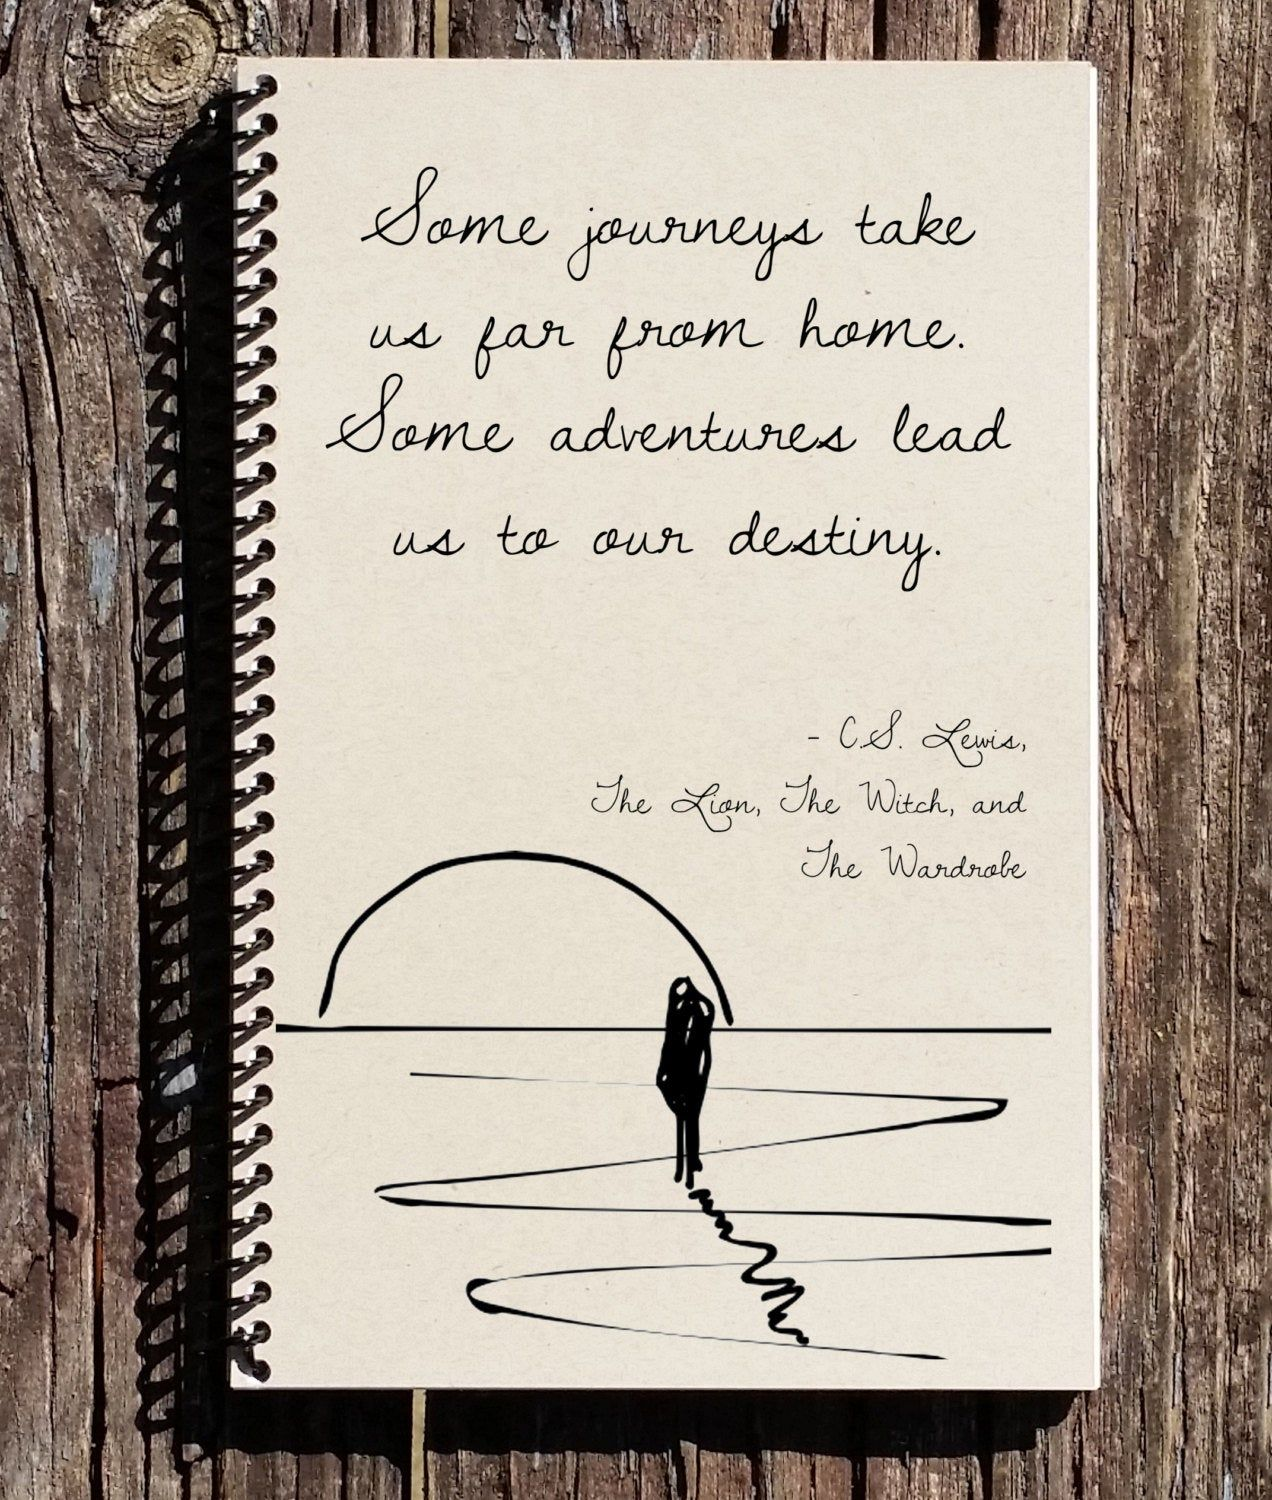 Photo of CS Lewis Quote – Some Roads Lead Us To Our Destiny – The Lion The Witch The Wardrobe – CS Lewis Note